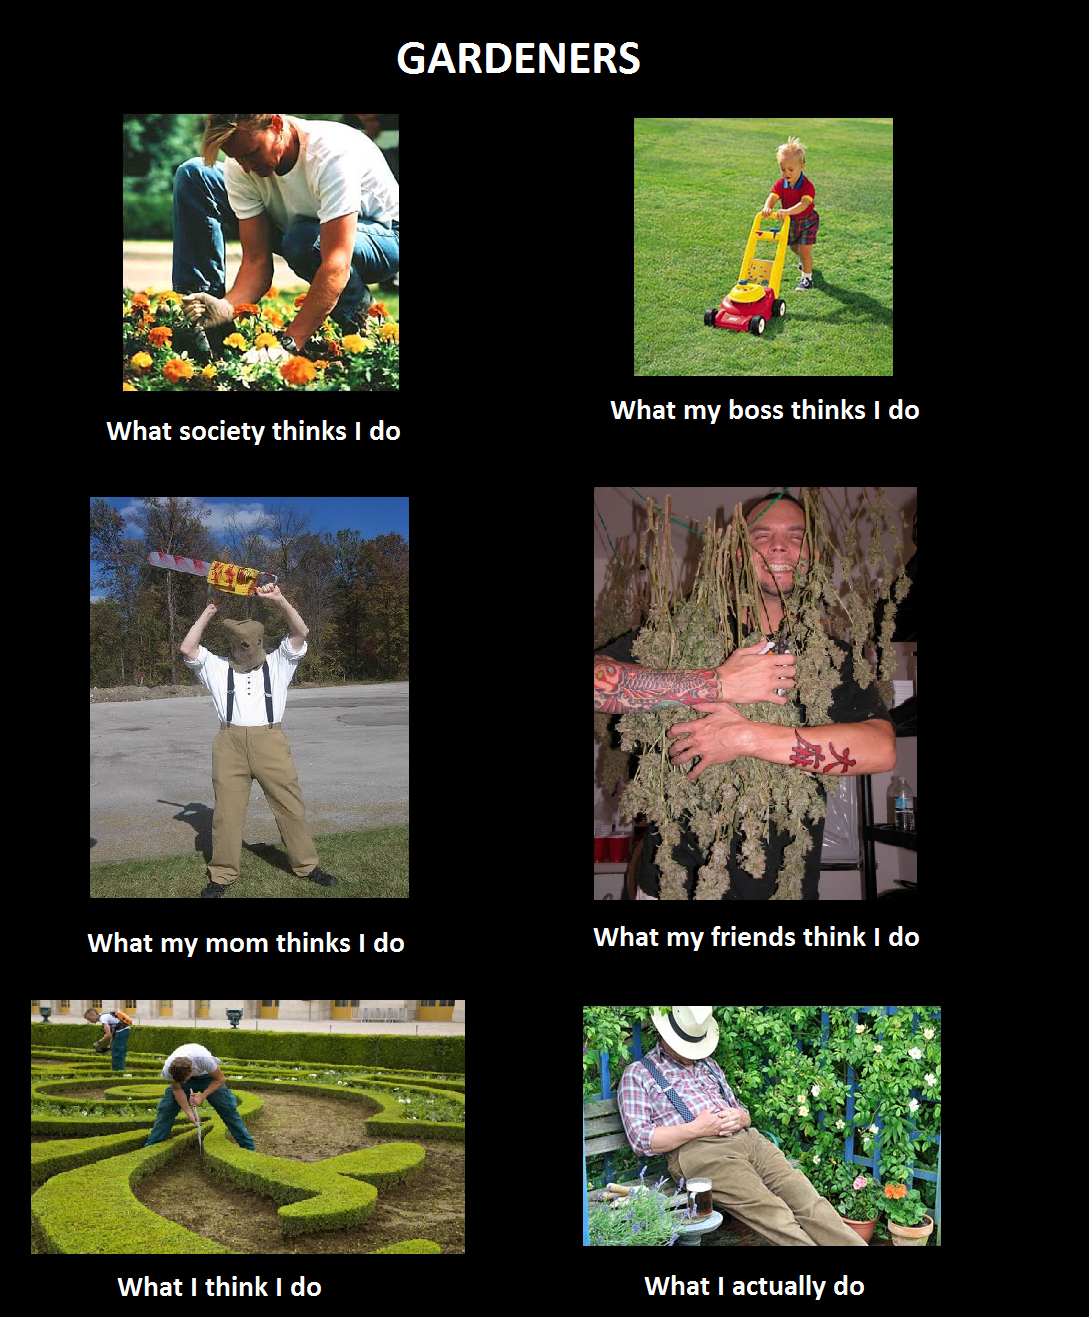 What my friends think I do what I actually do - Gardeners